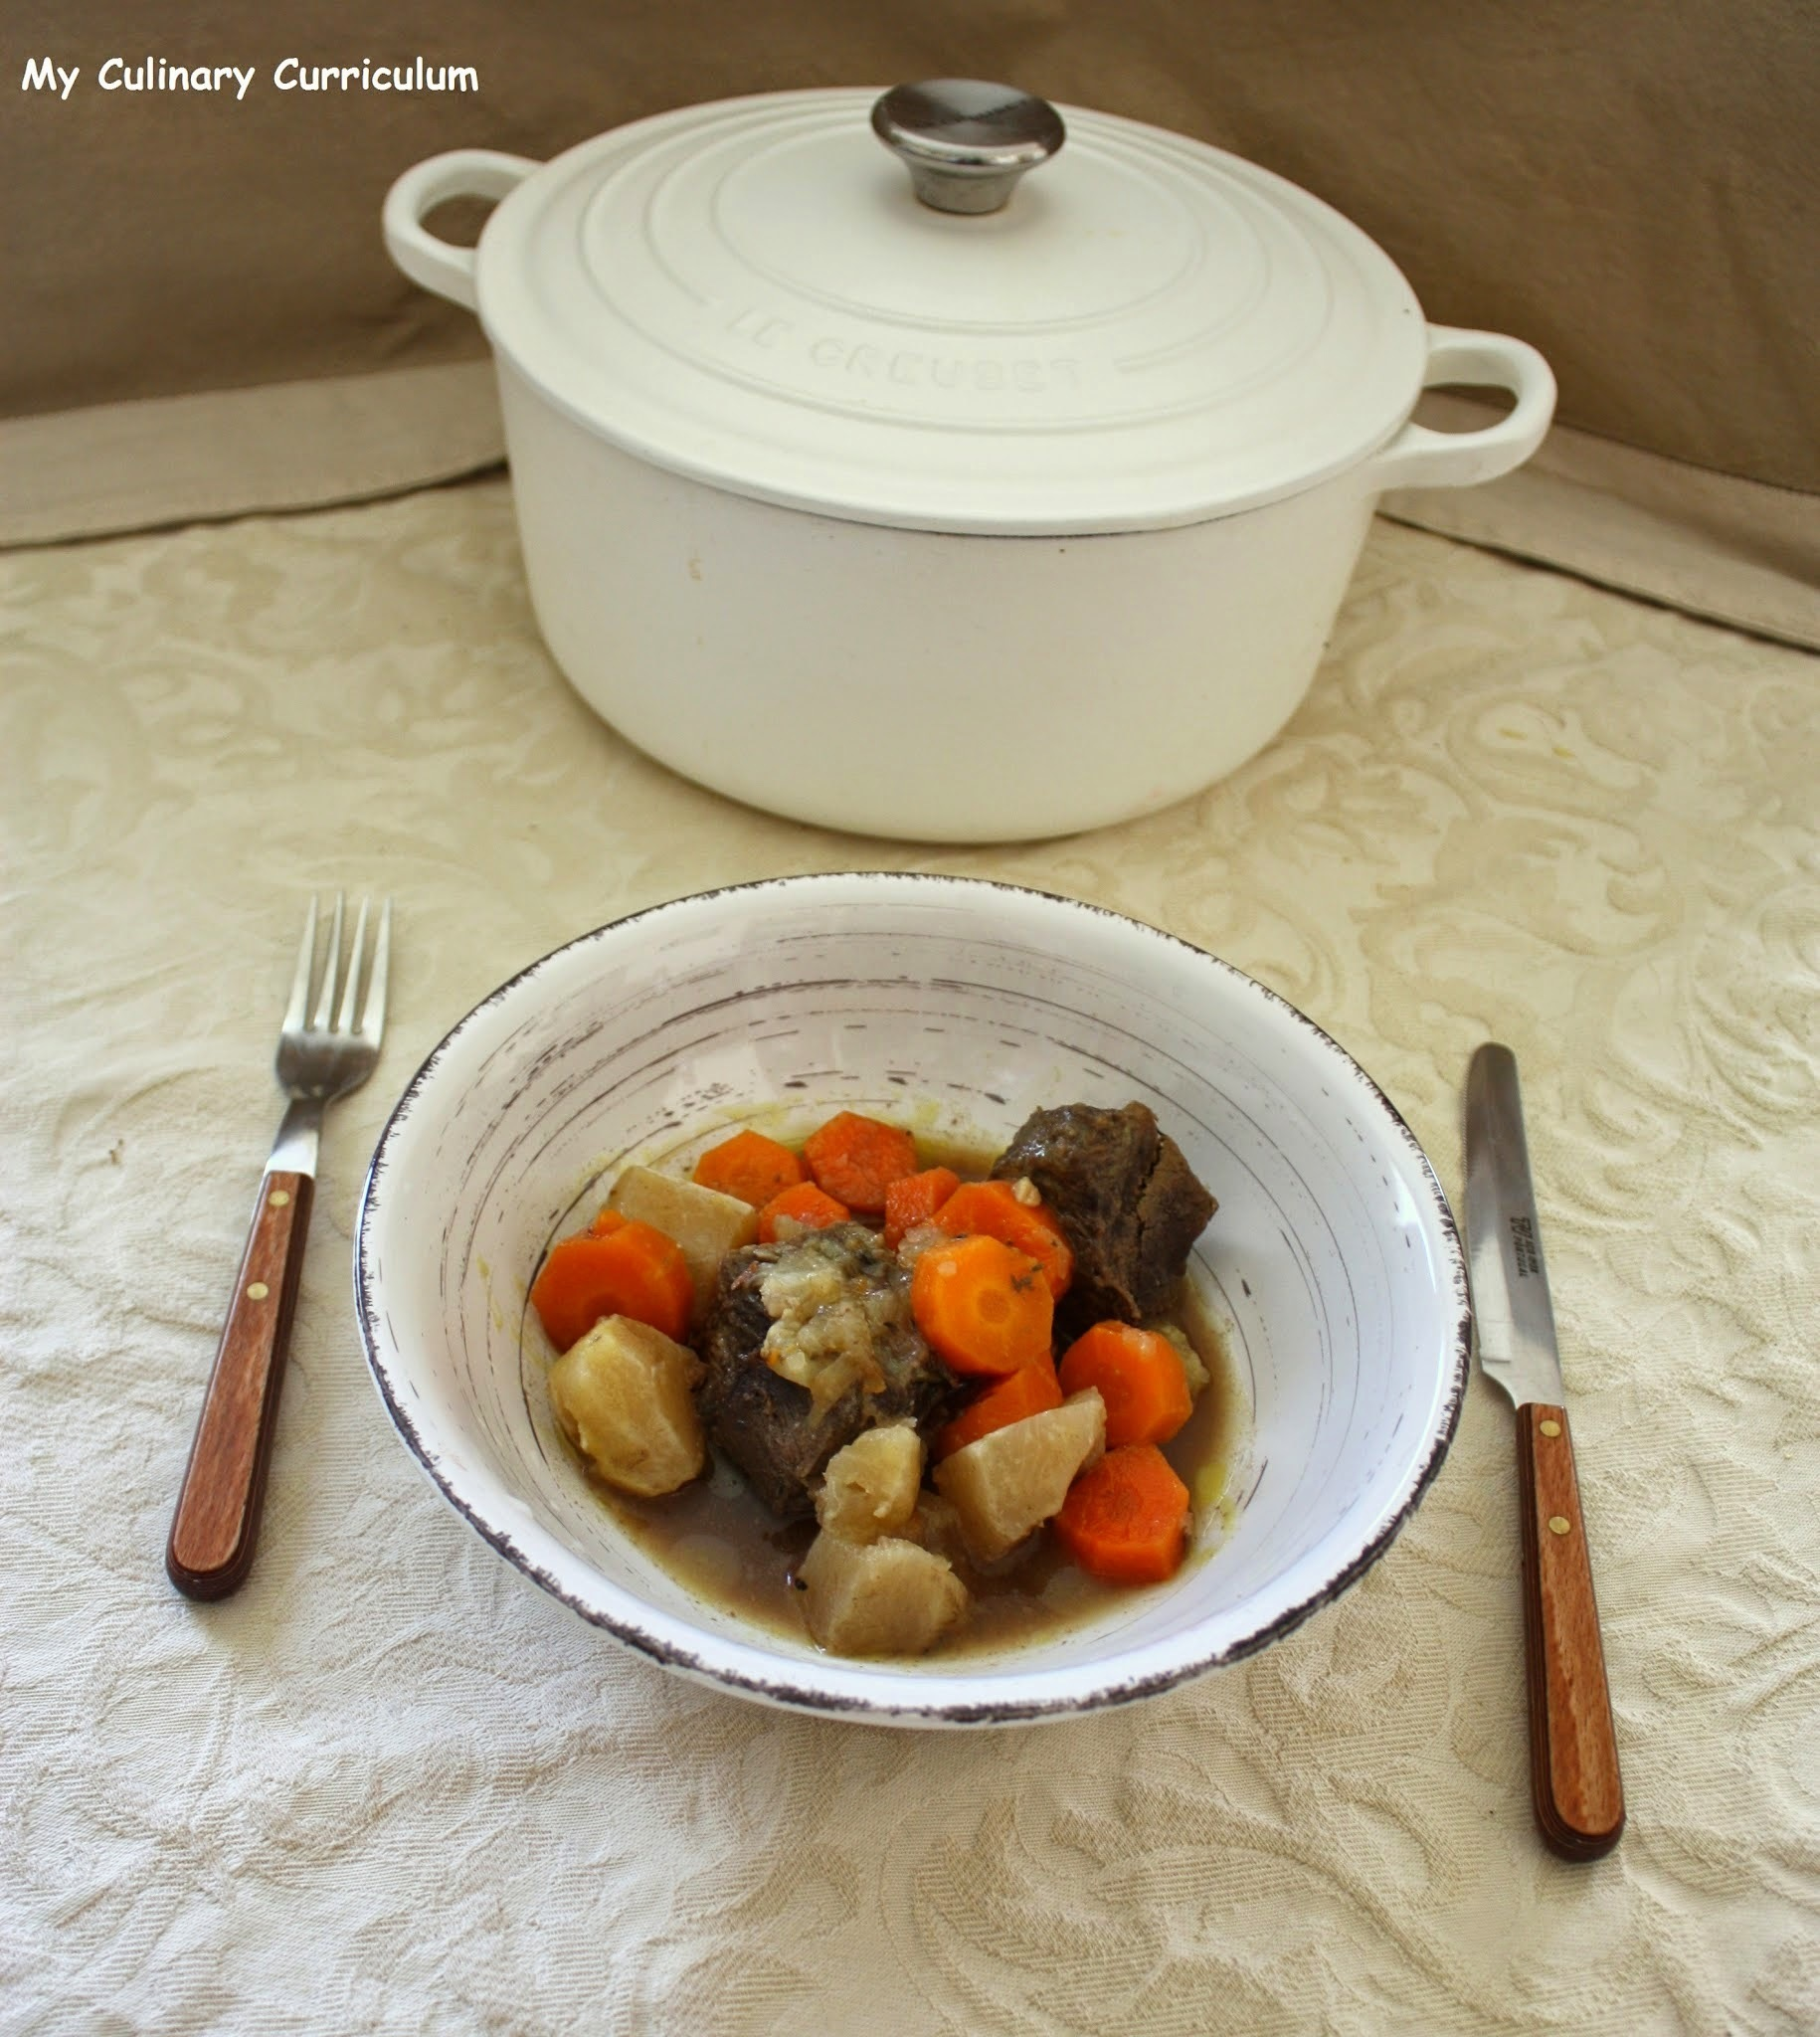 Boeuf braisé aux carottes et navets (Braised beef with carrots and turnips)